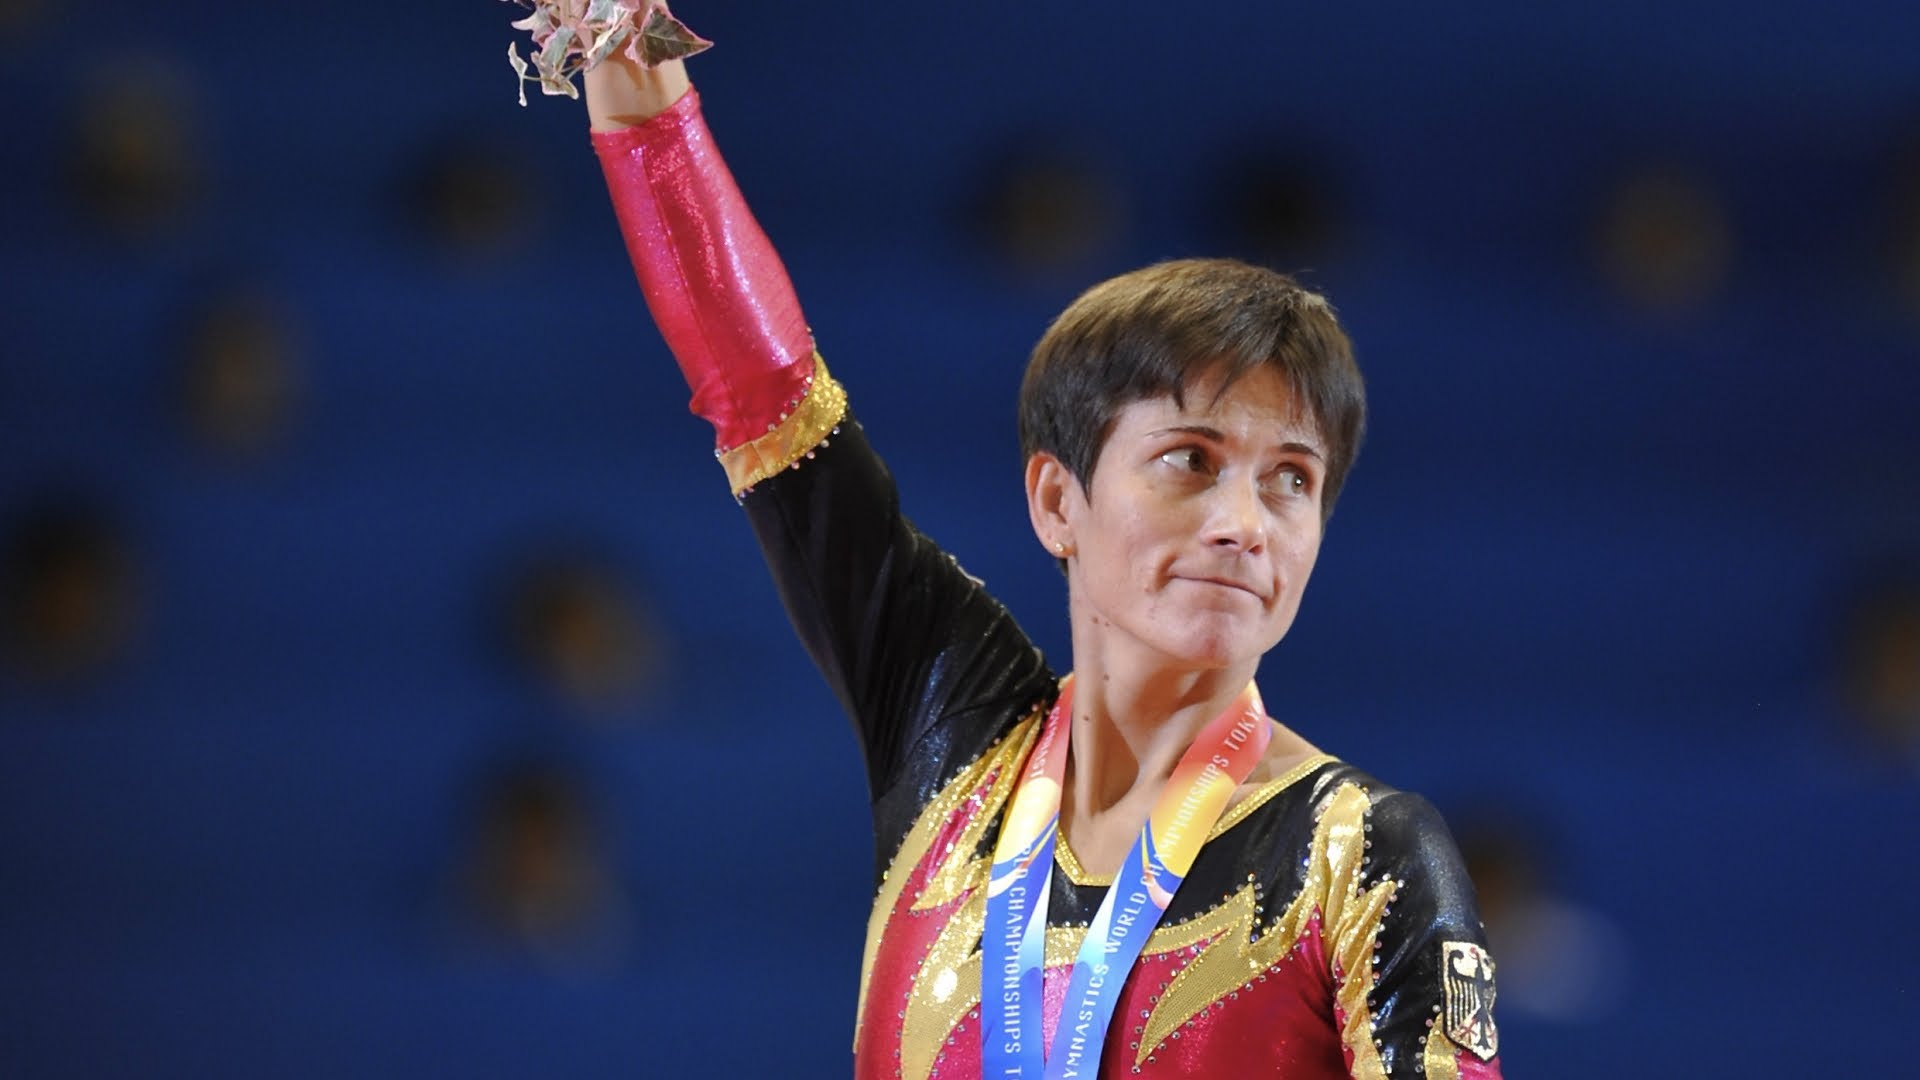 43-Year-Old Gymnast Oksana Chusovitina Proves Age Is Just A Number